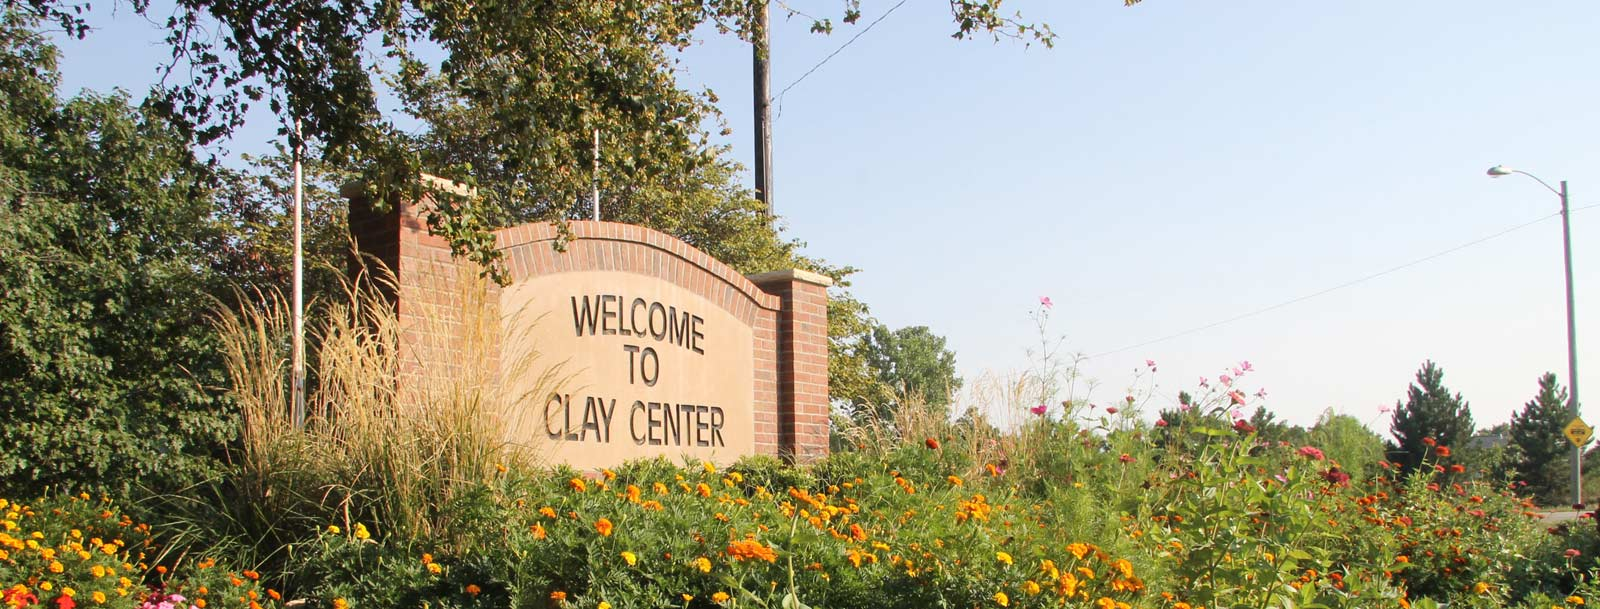 Take a look at the attractions around the area in Clay Center senior living facility